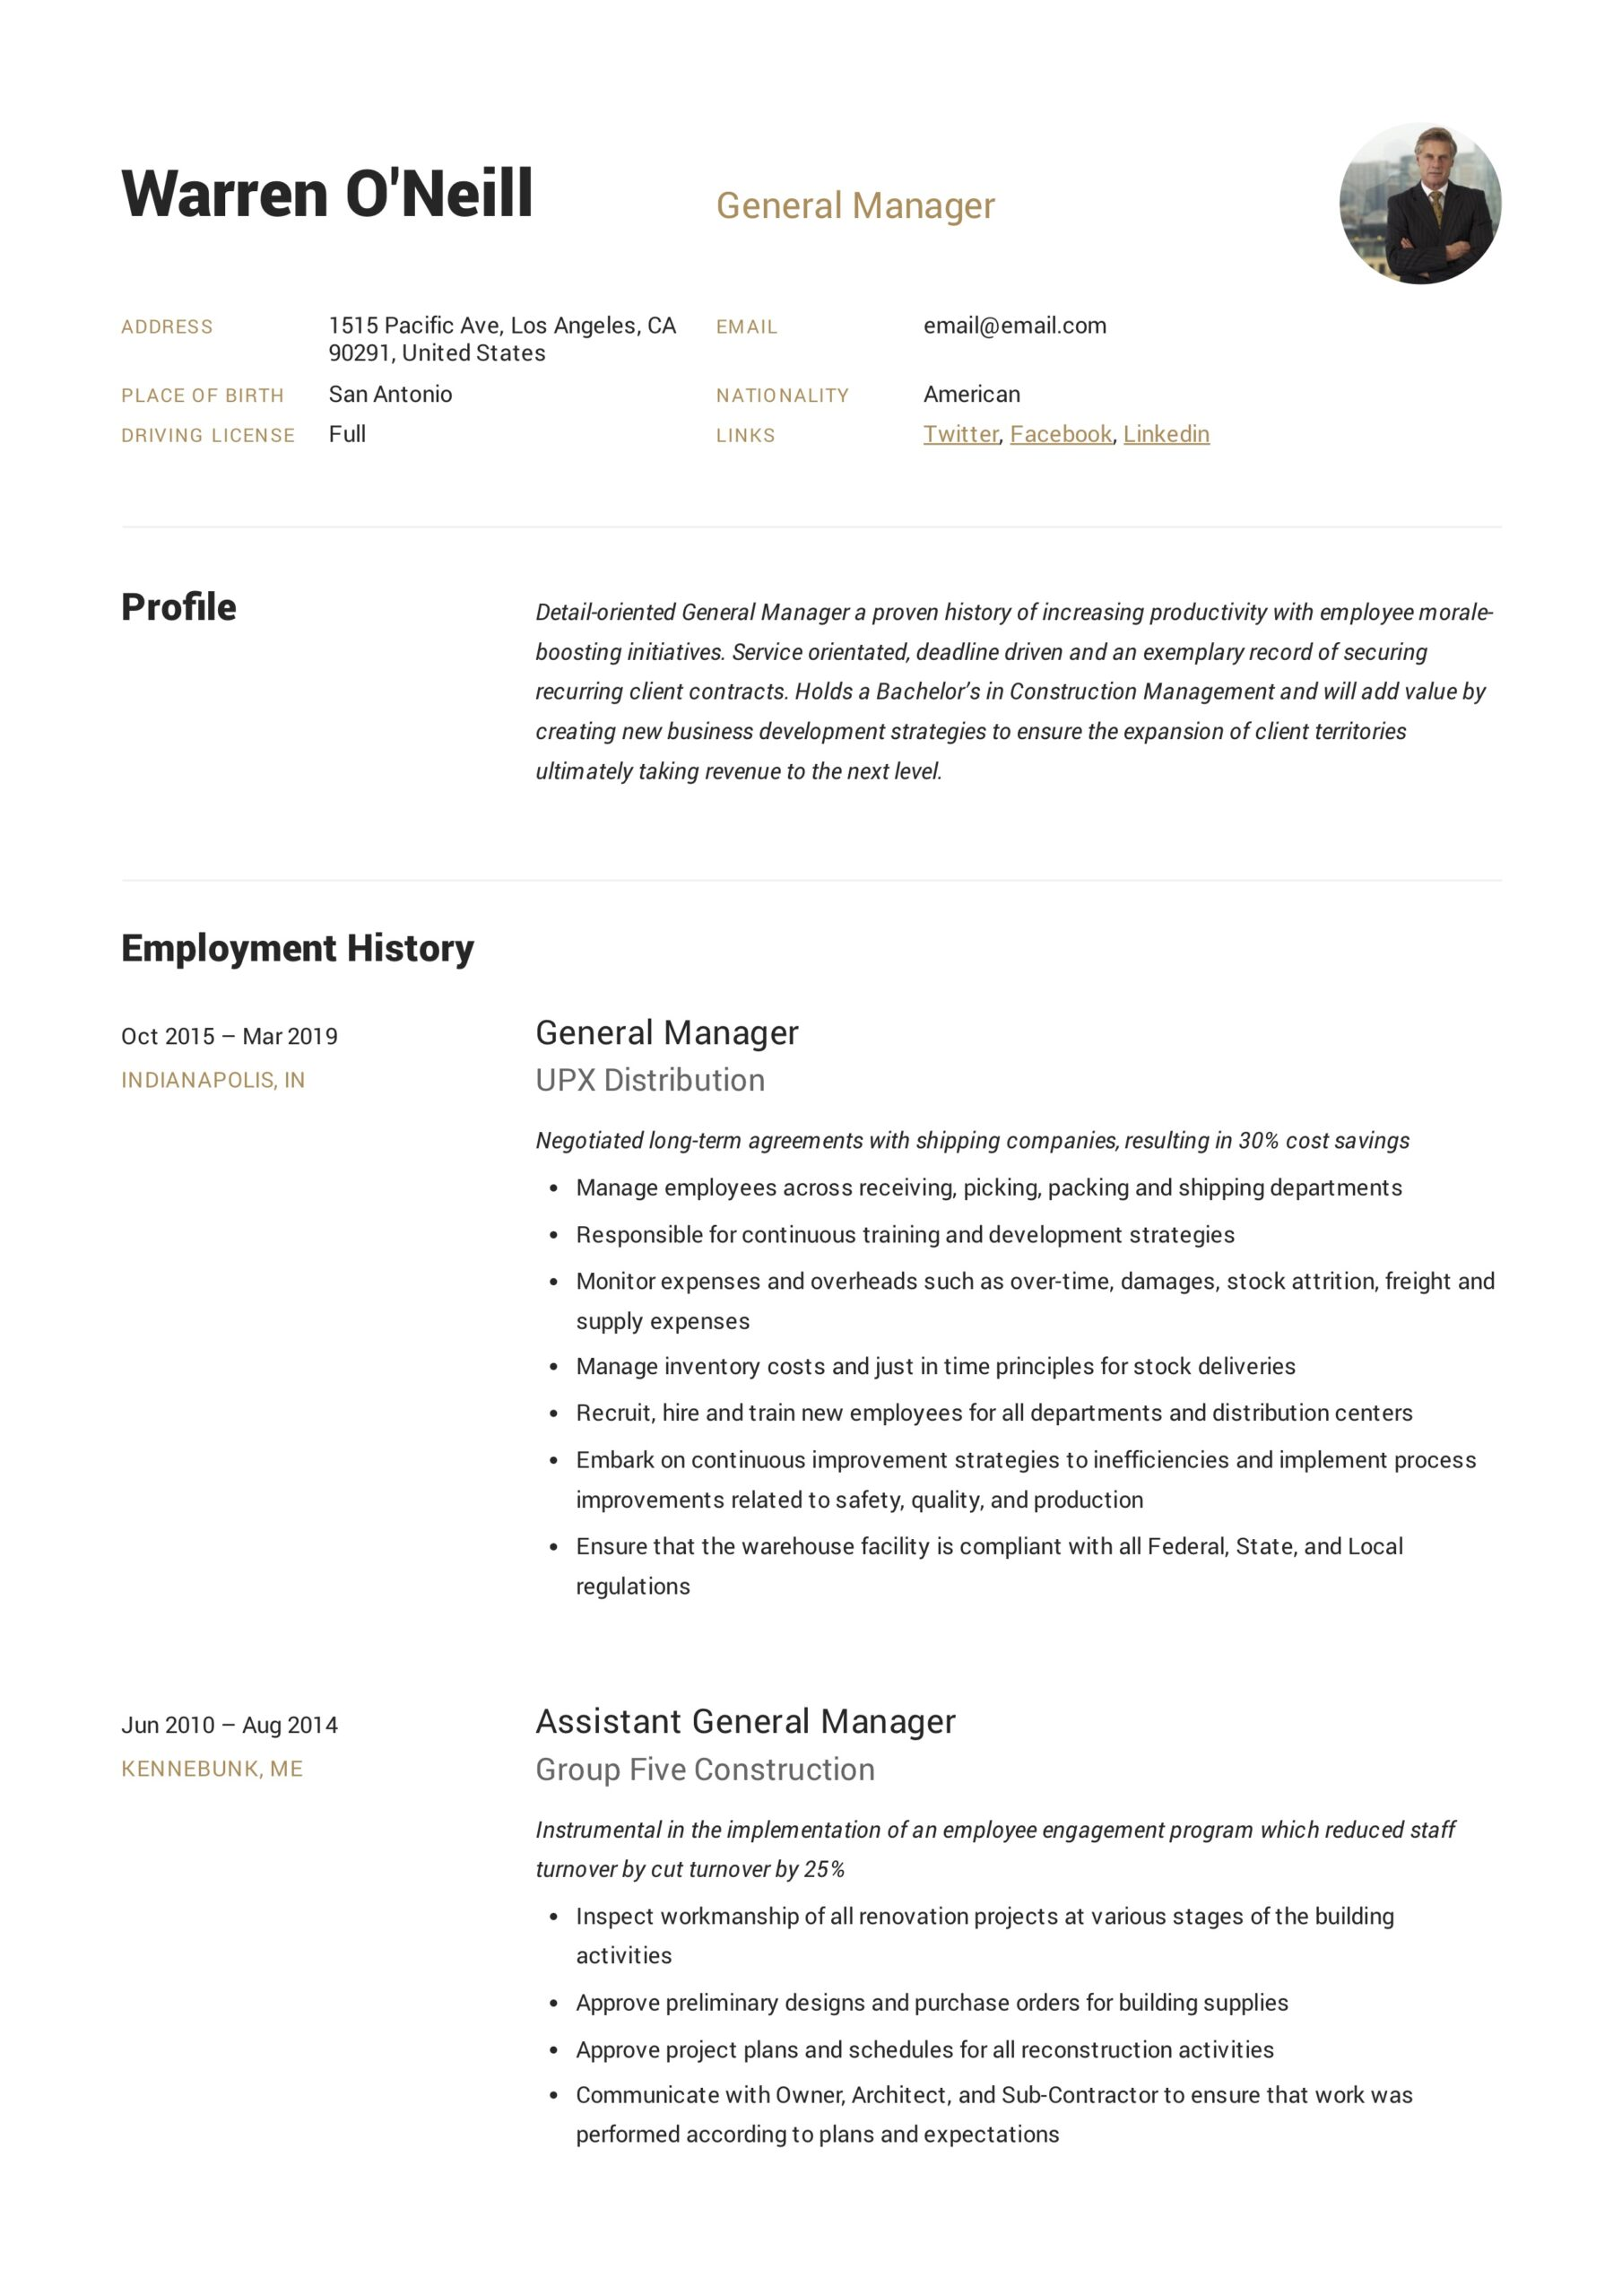 general manager resume writing guide examples pdf hotel template neill microsoft word Resume Hotel General Manager Resume Template